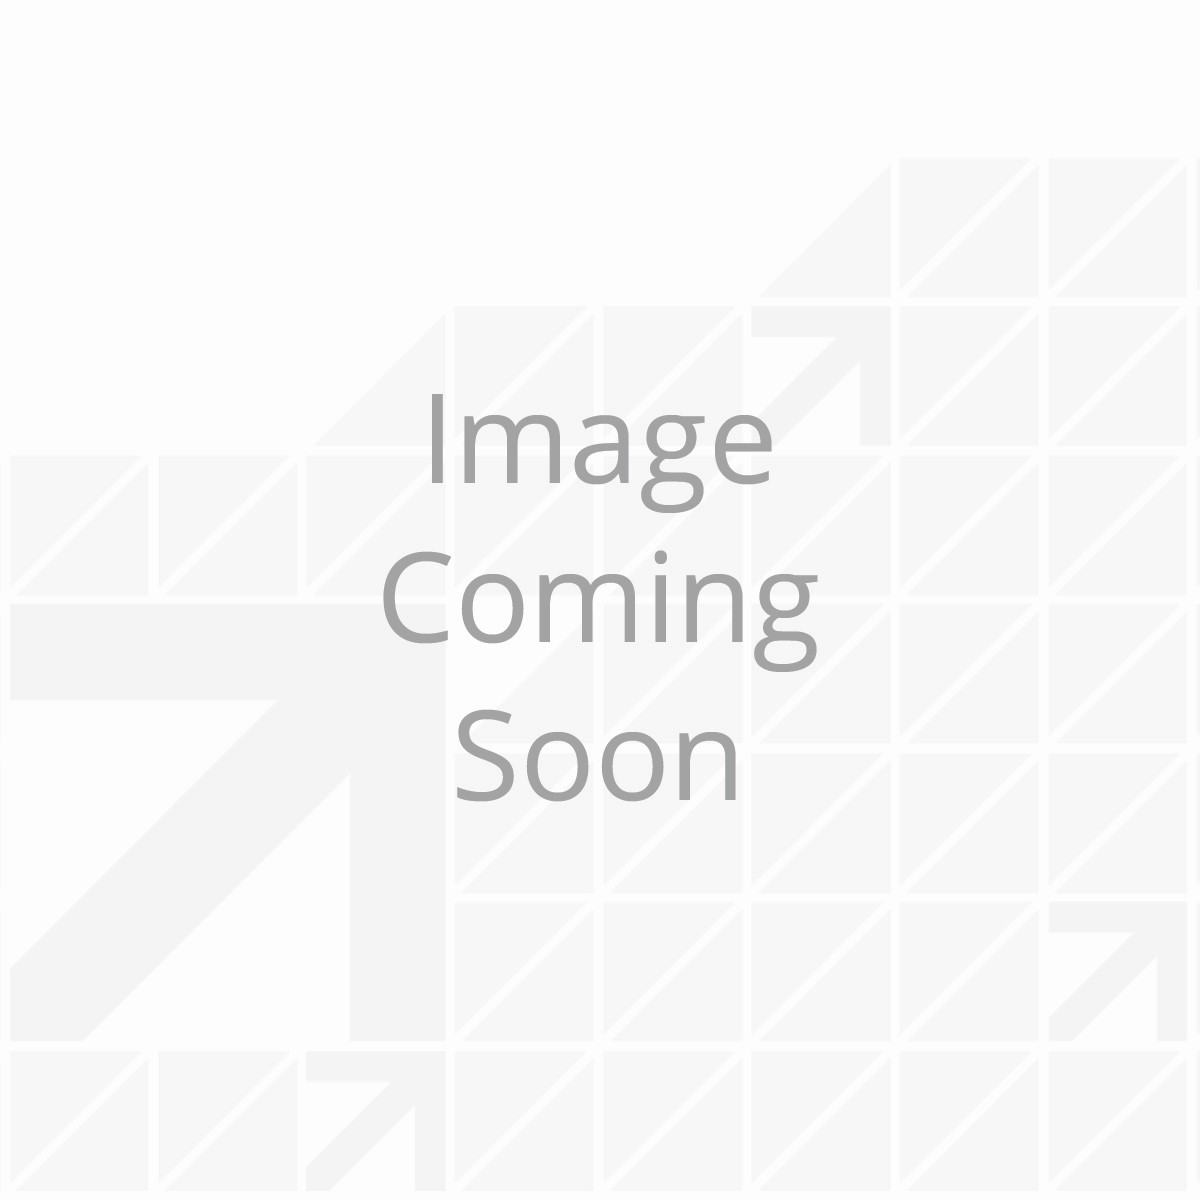 Standard Switch and Harness with Black Exterior Seal Plate - Landing Gear